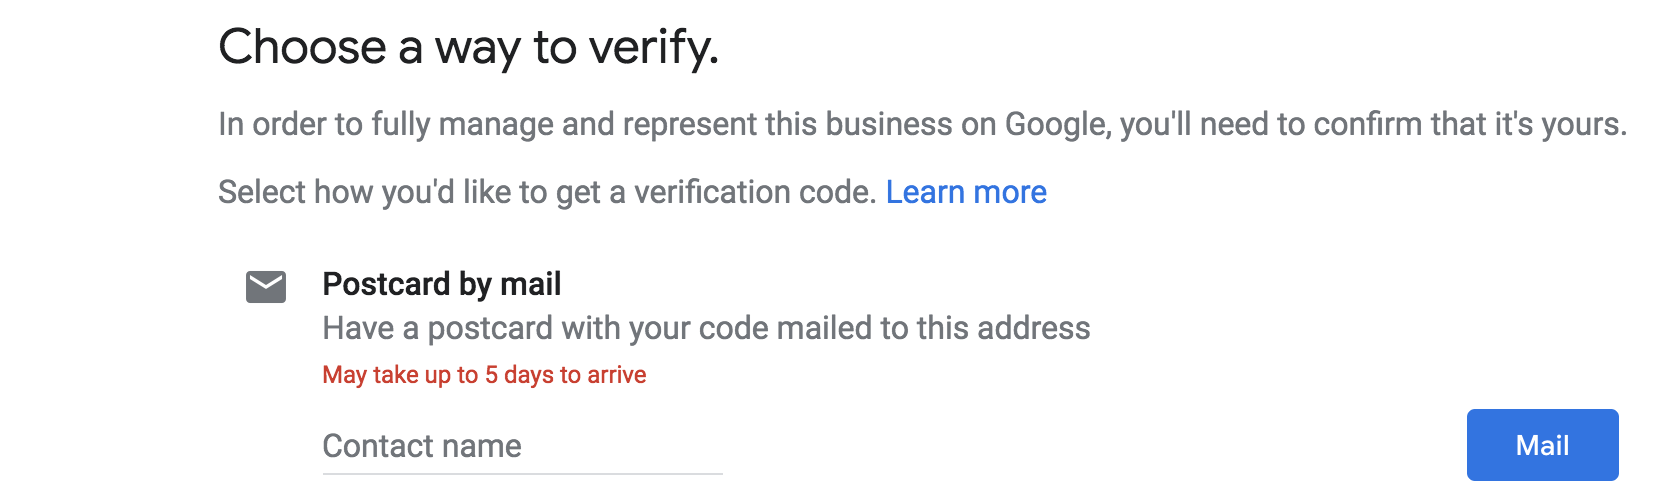 Display of Google Address Verification Methods Send A Postcard Option